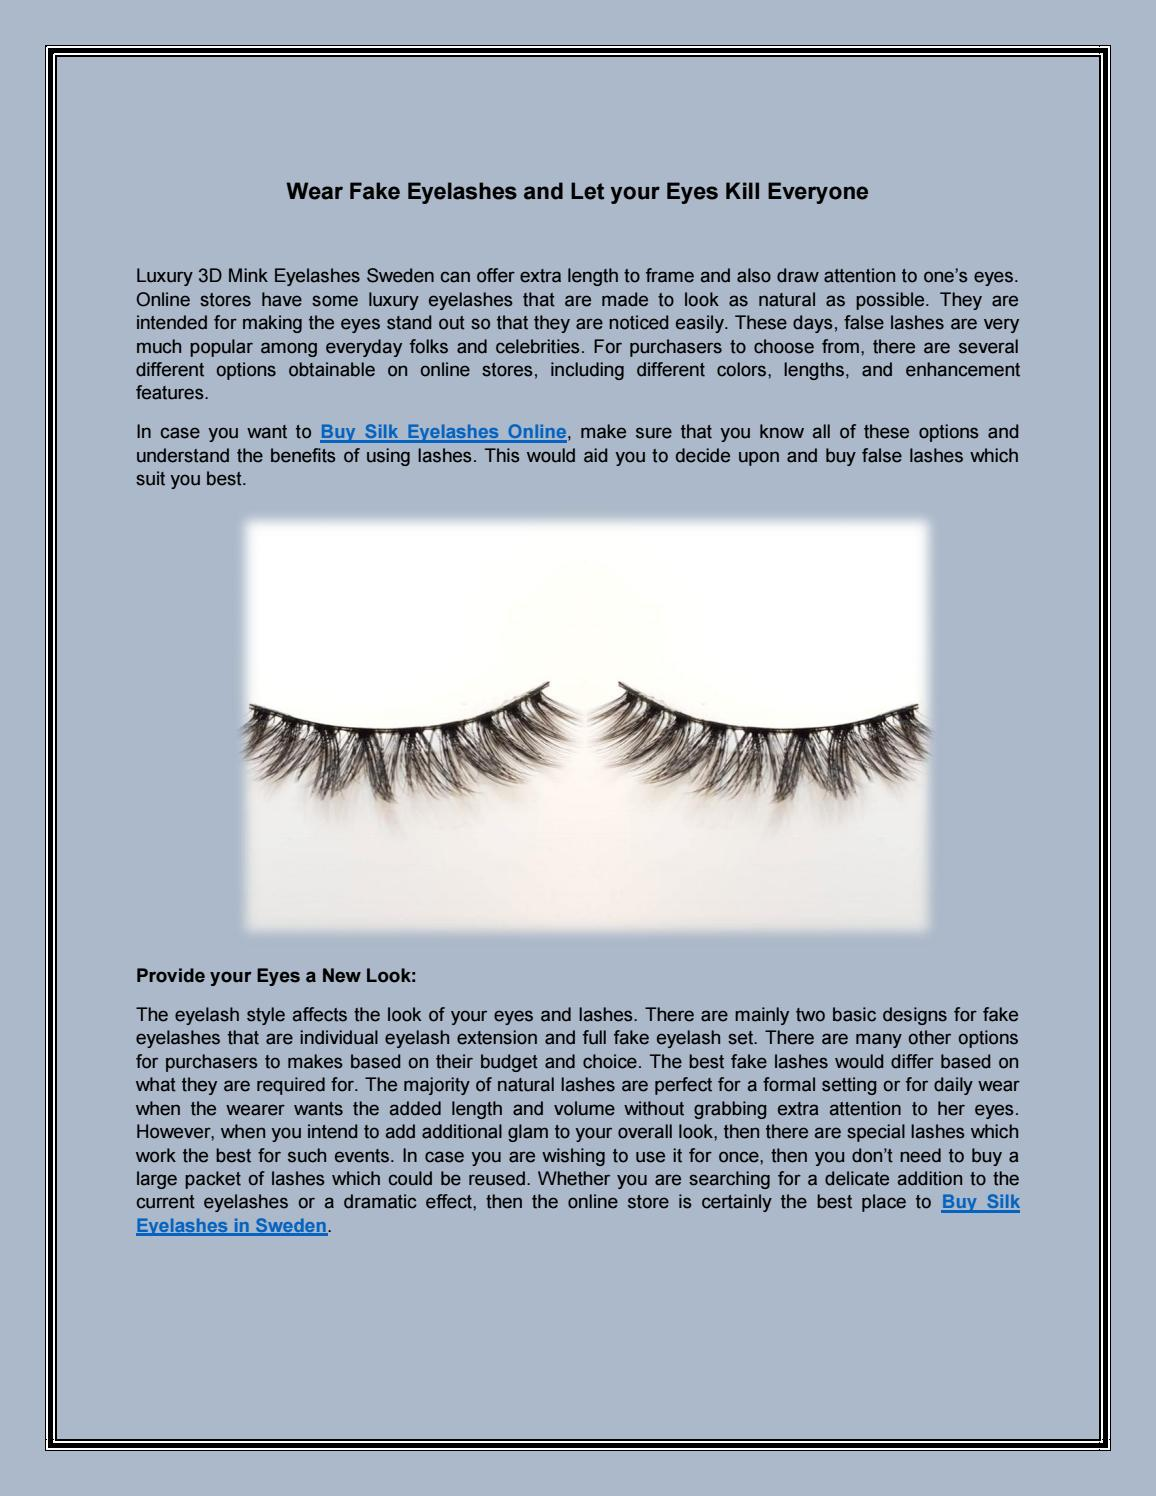 a24709ef74b Luxury 3D Mink Eyelashes Sweden | Buy Silk Eyelashes in Sweden | Buy Silk  Eyelashes Online by Be A Million - issuu